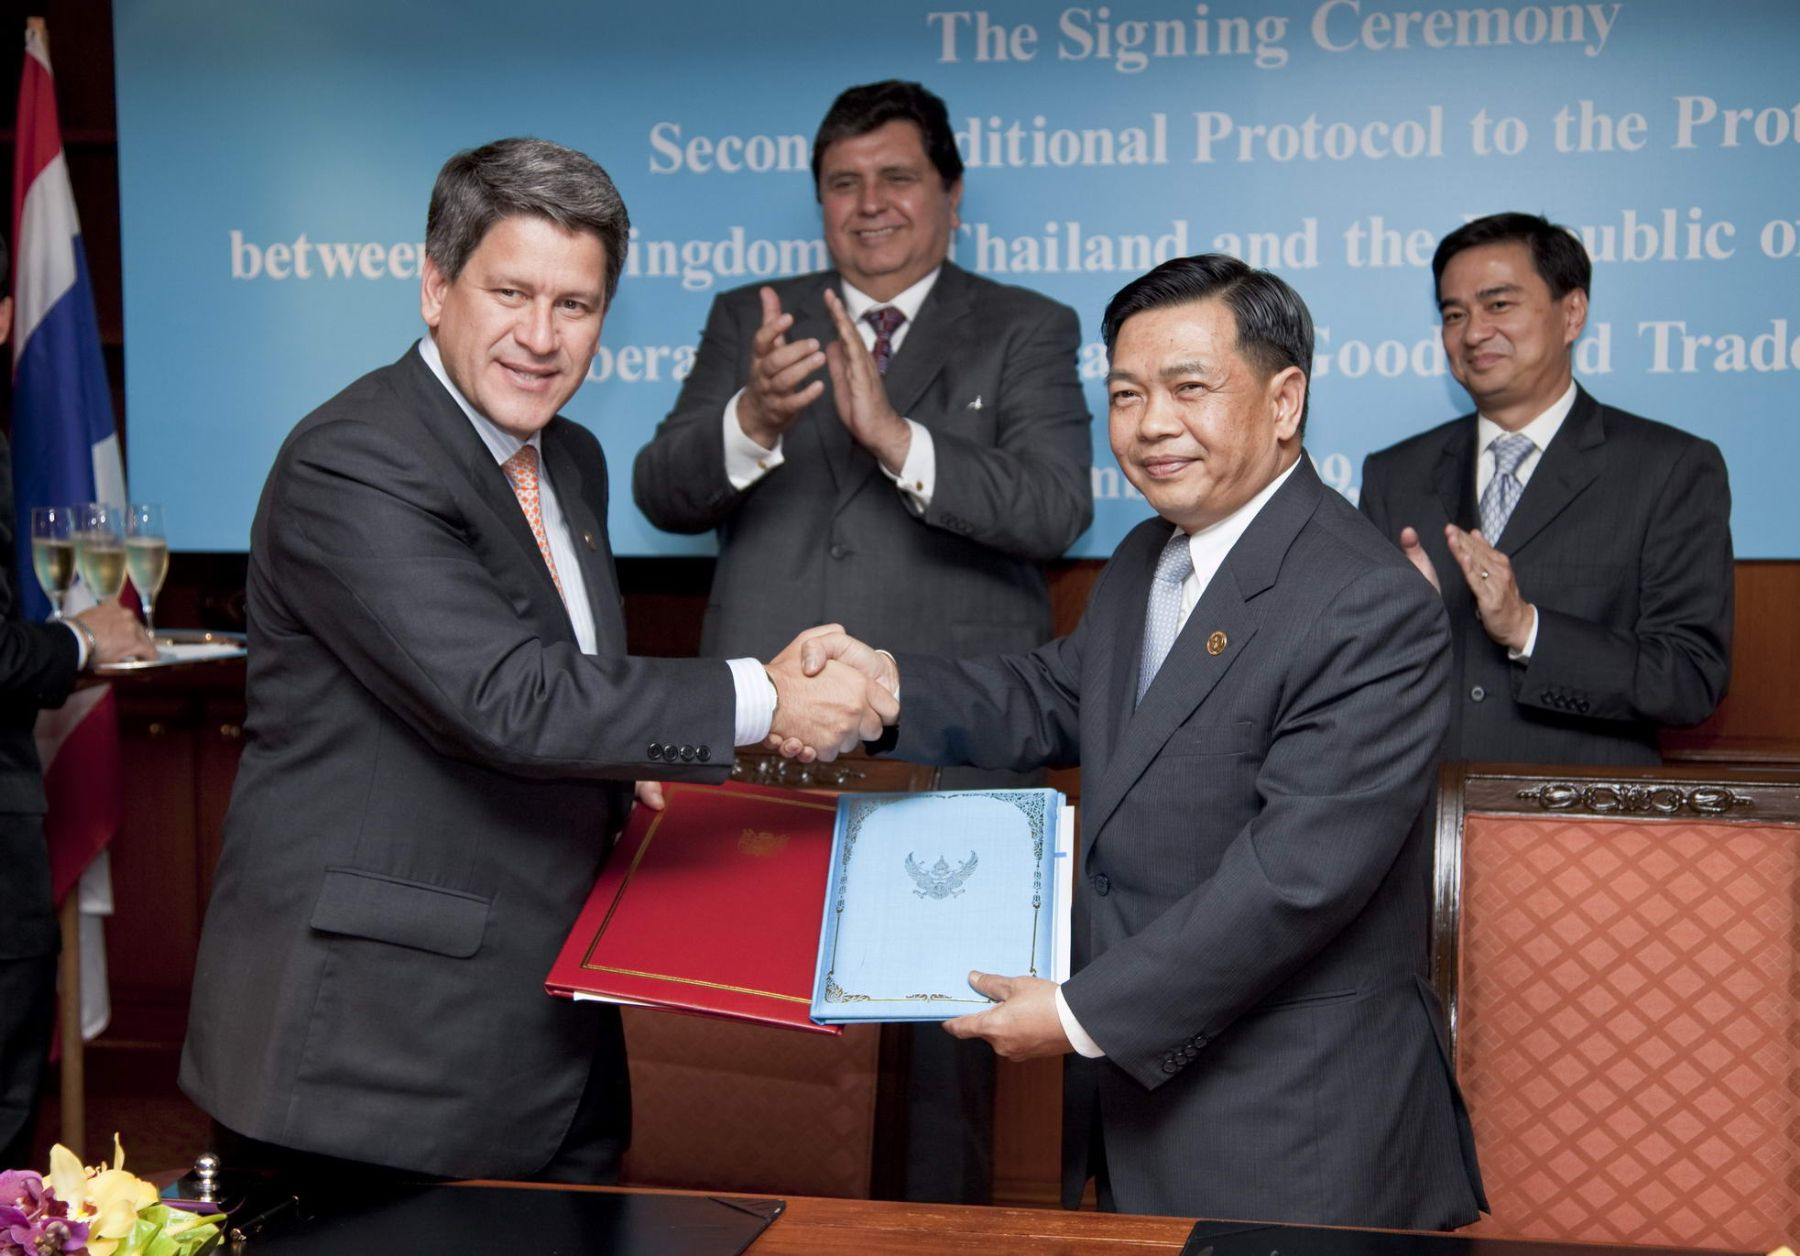 Peru Thailand Sign Additional Protocol To Trade Agreement News